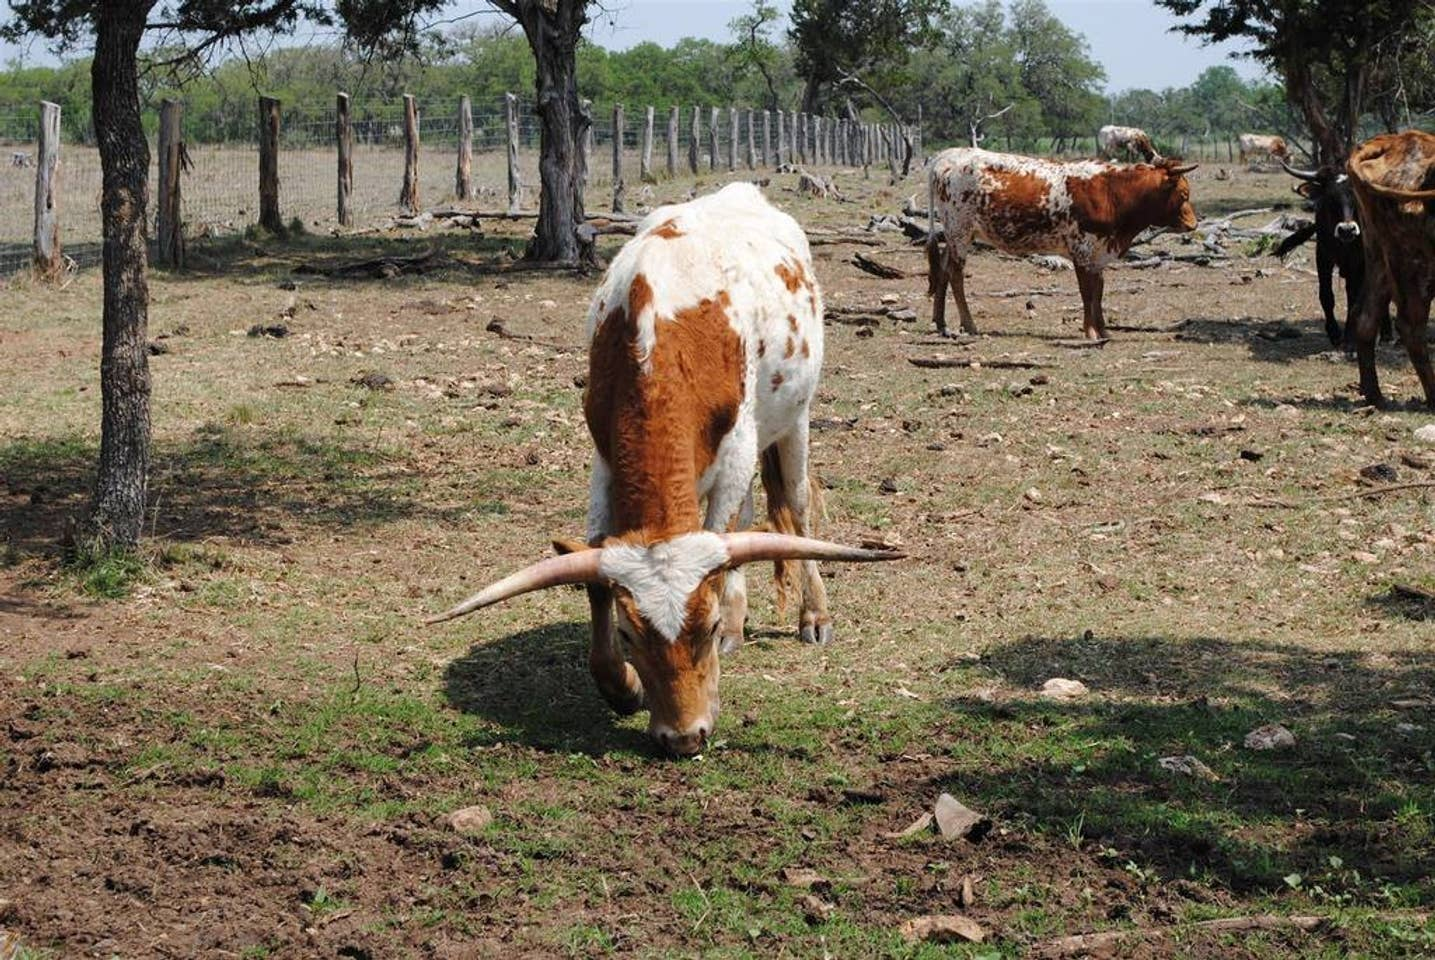 Longhorns roam the pastures here, they're a Texas classic!